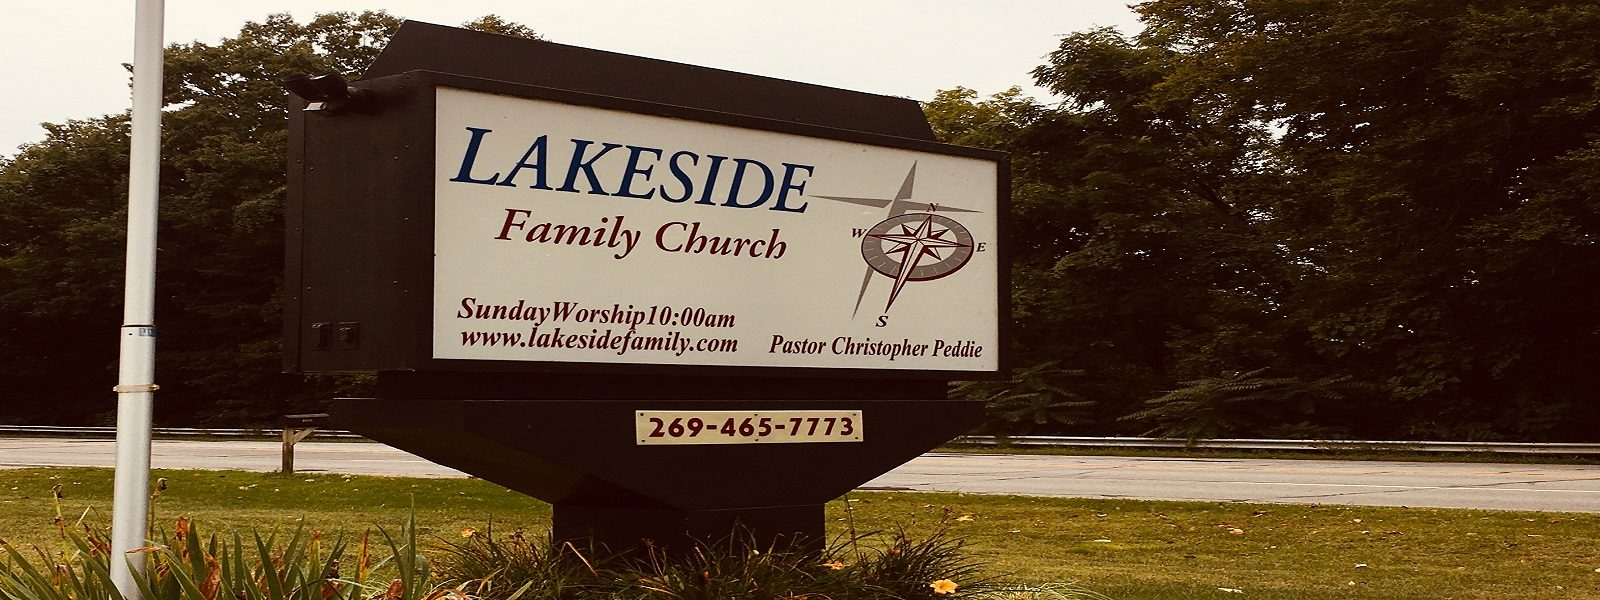 About Lakeside Family Church